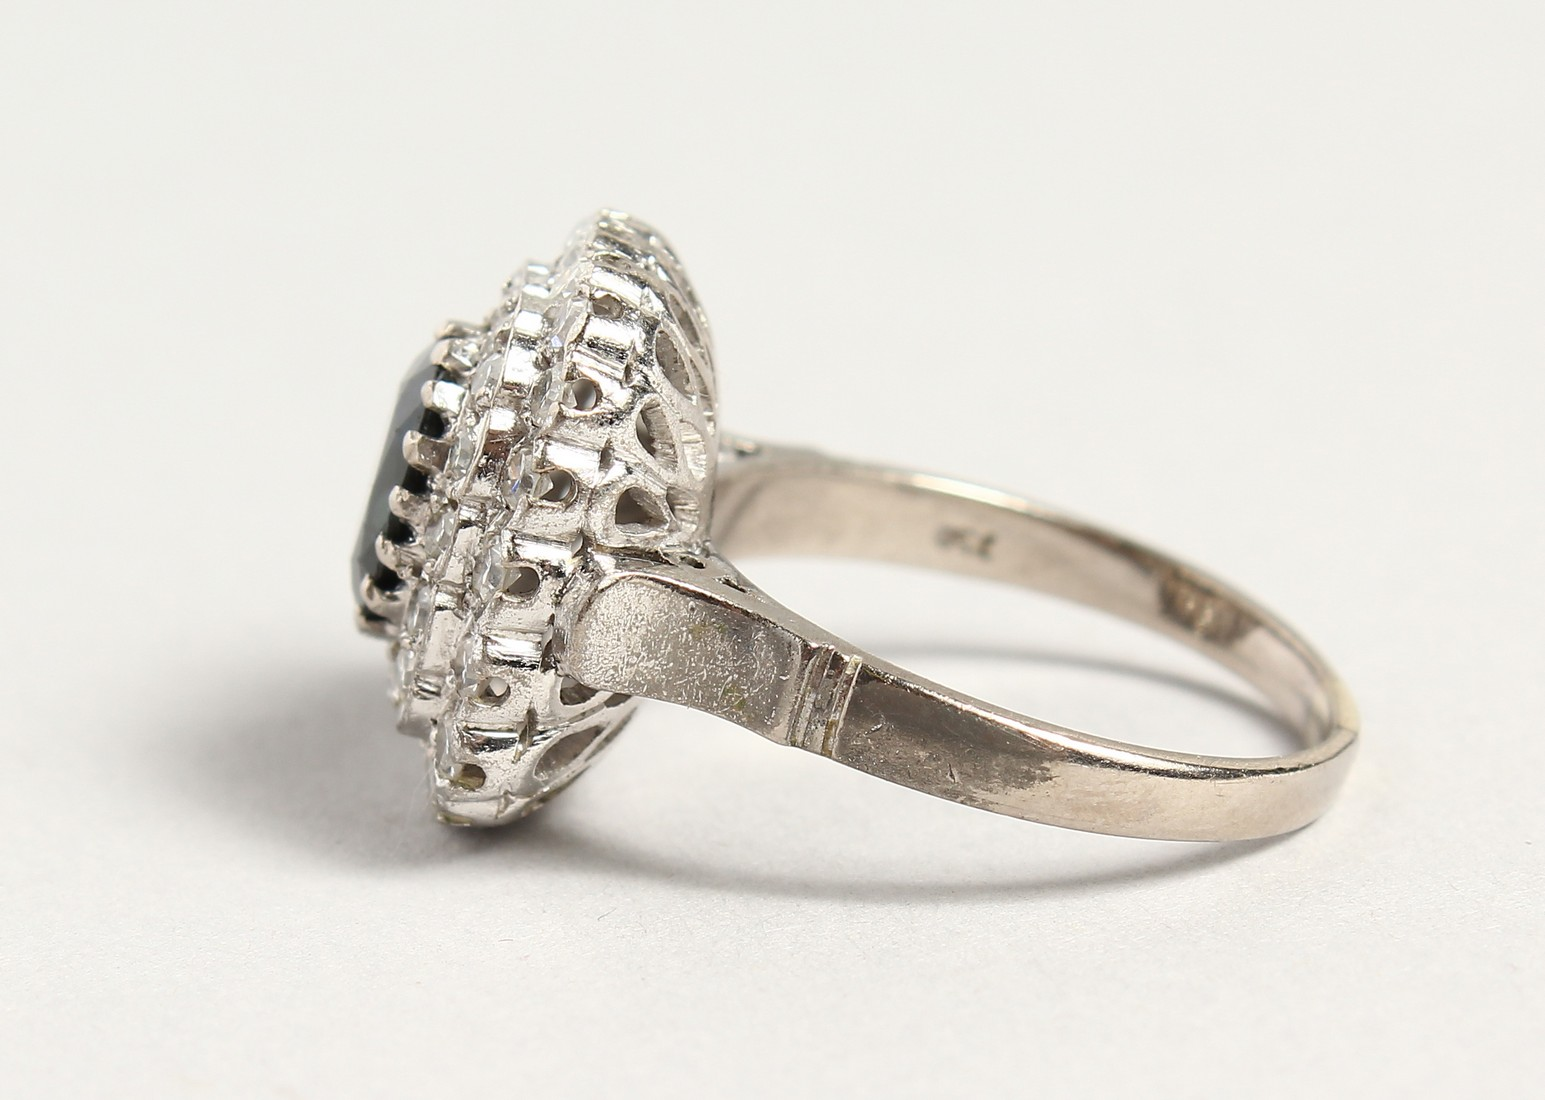 A SUPERB 18CT WHITE GOLD SAPPHIRE AND DIAMOND CLUSTER RING. - Image 2 of 6